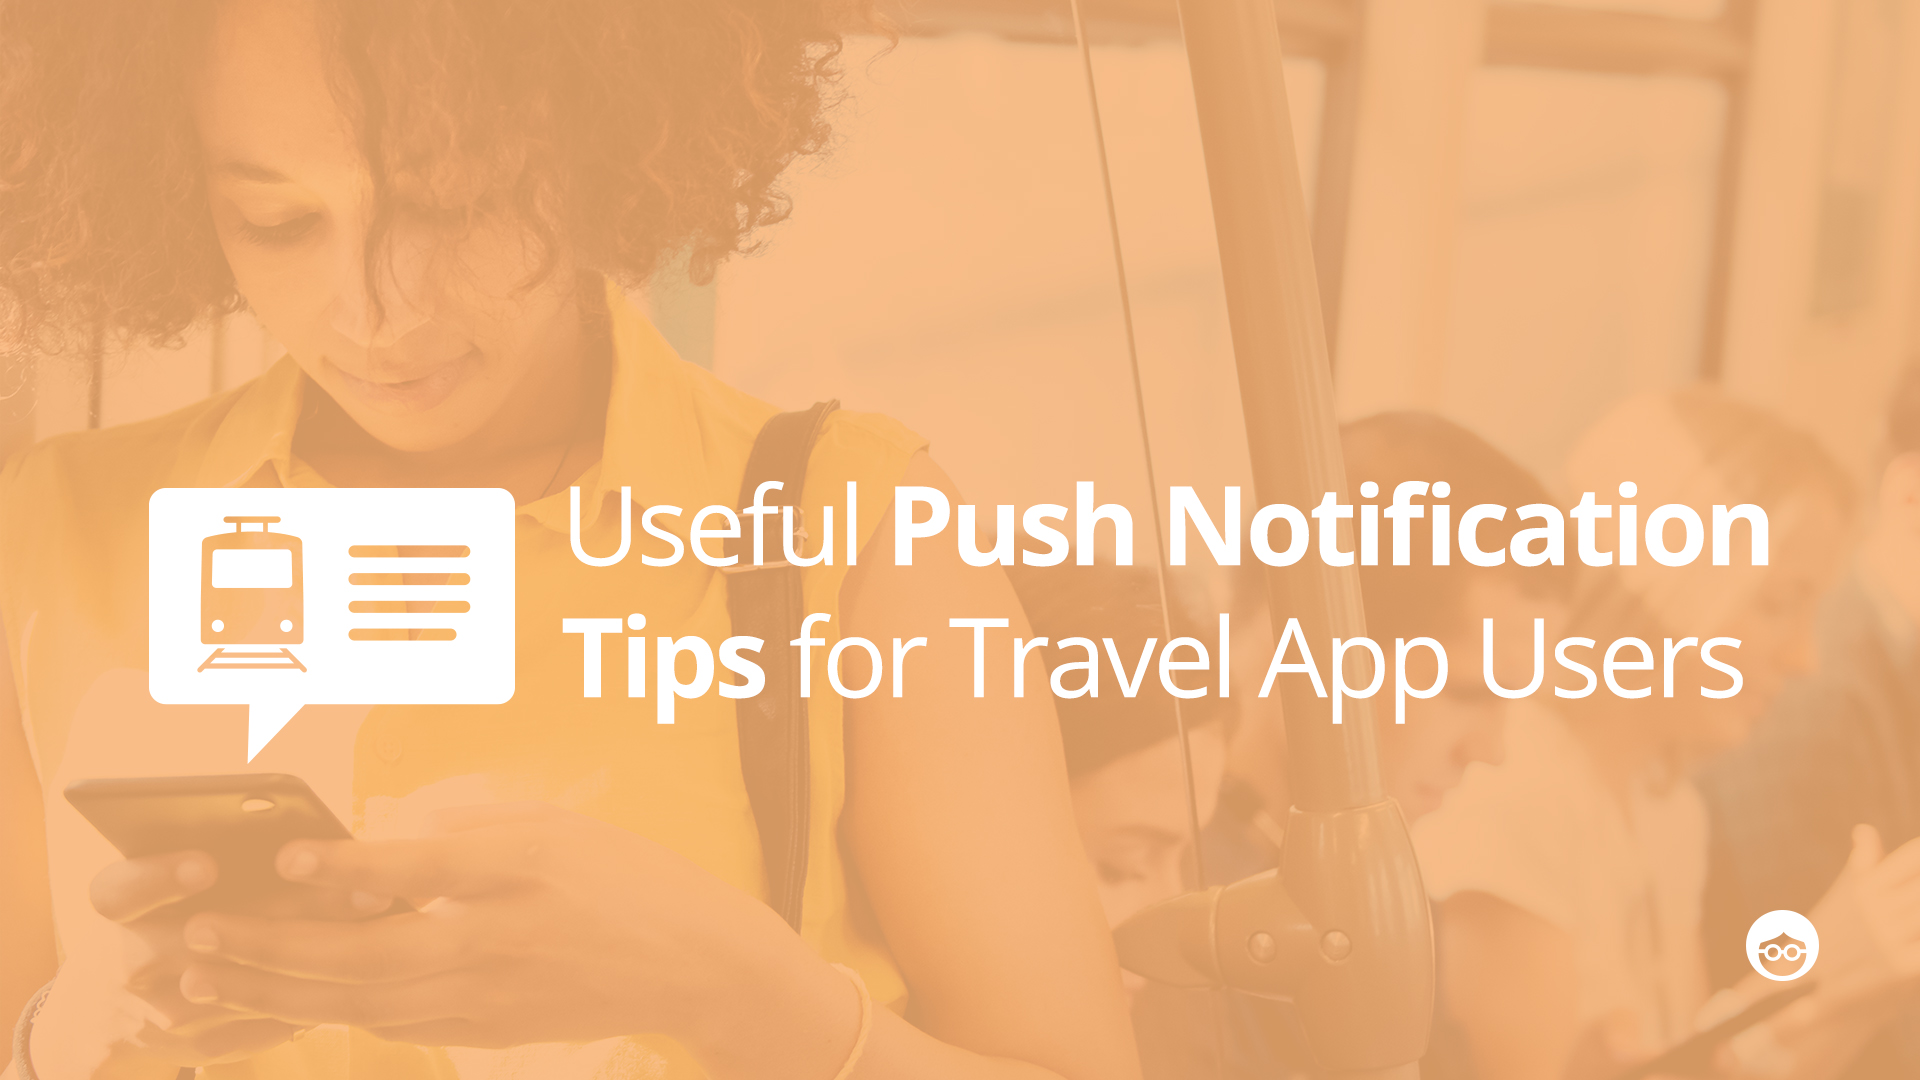 Push Notifications for Travel App Users